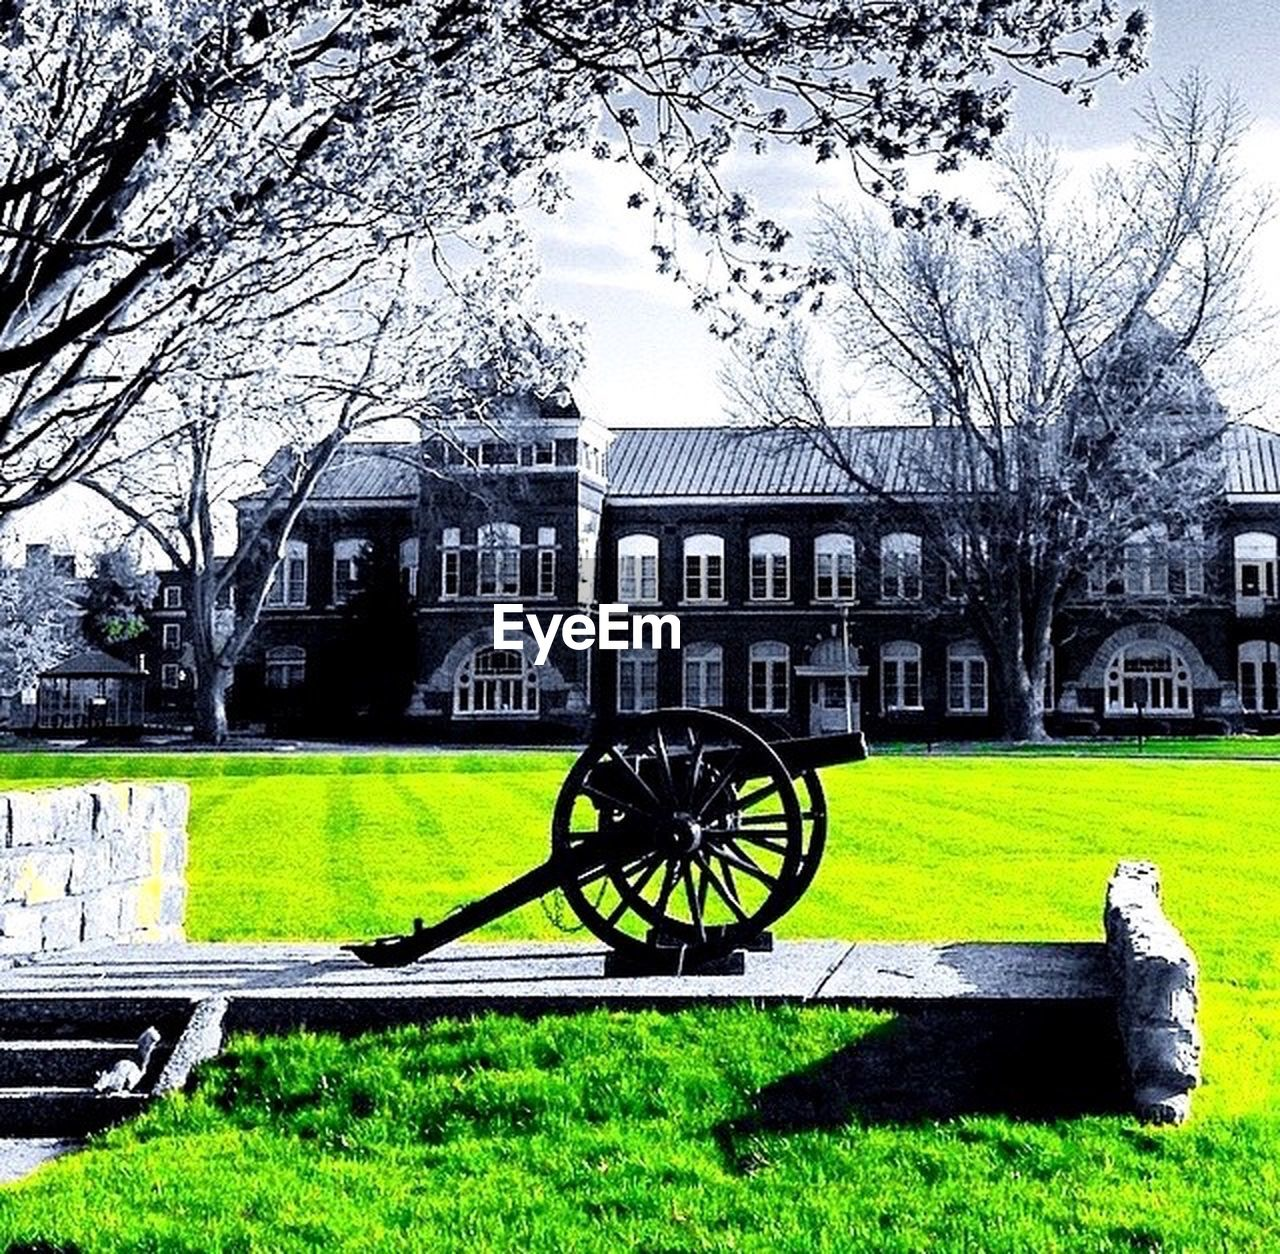 history, building exterior, grass, architecture, built structure, tree, the past, lawn, canon, cannon, day, outdoors, nature, old-fashioned, weapon, travel destinations, no people, growth, bare tree, beauty in nature